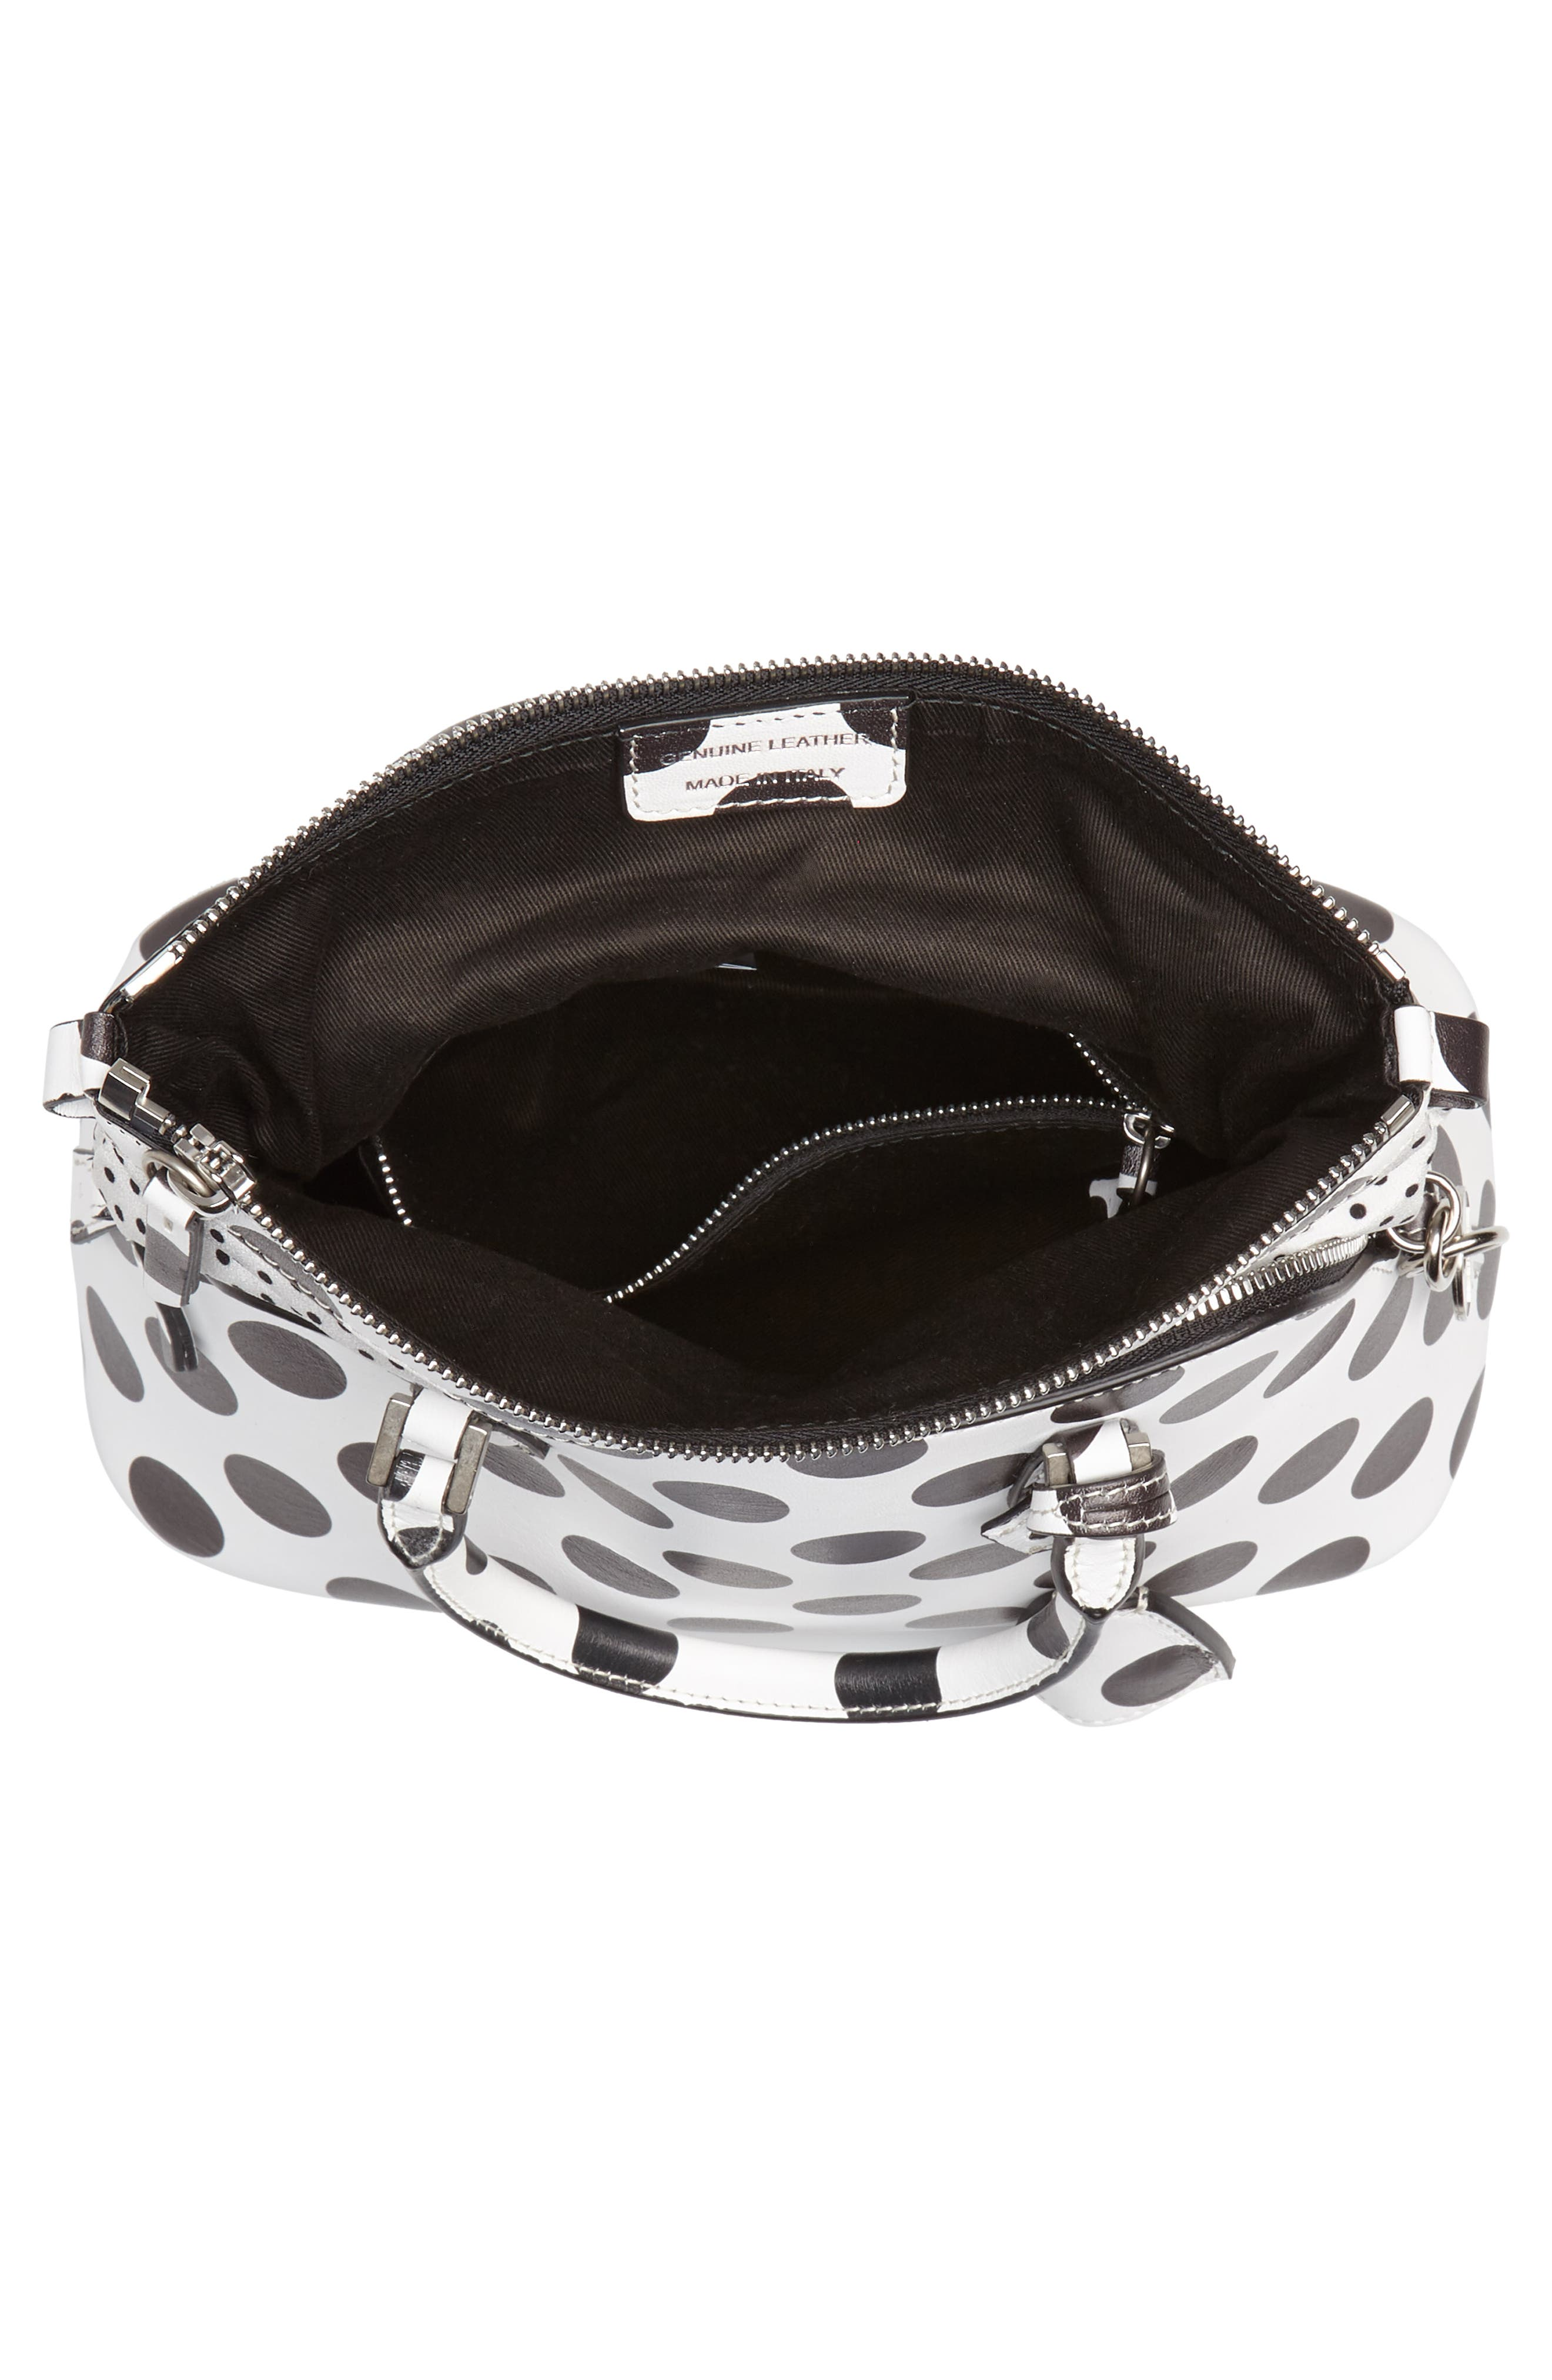 Medium 5AC Leather Handbag,                             Alternate thumbnail 4, color,                             White/ Black